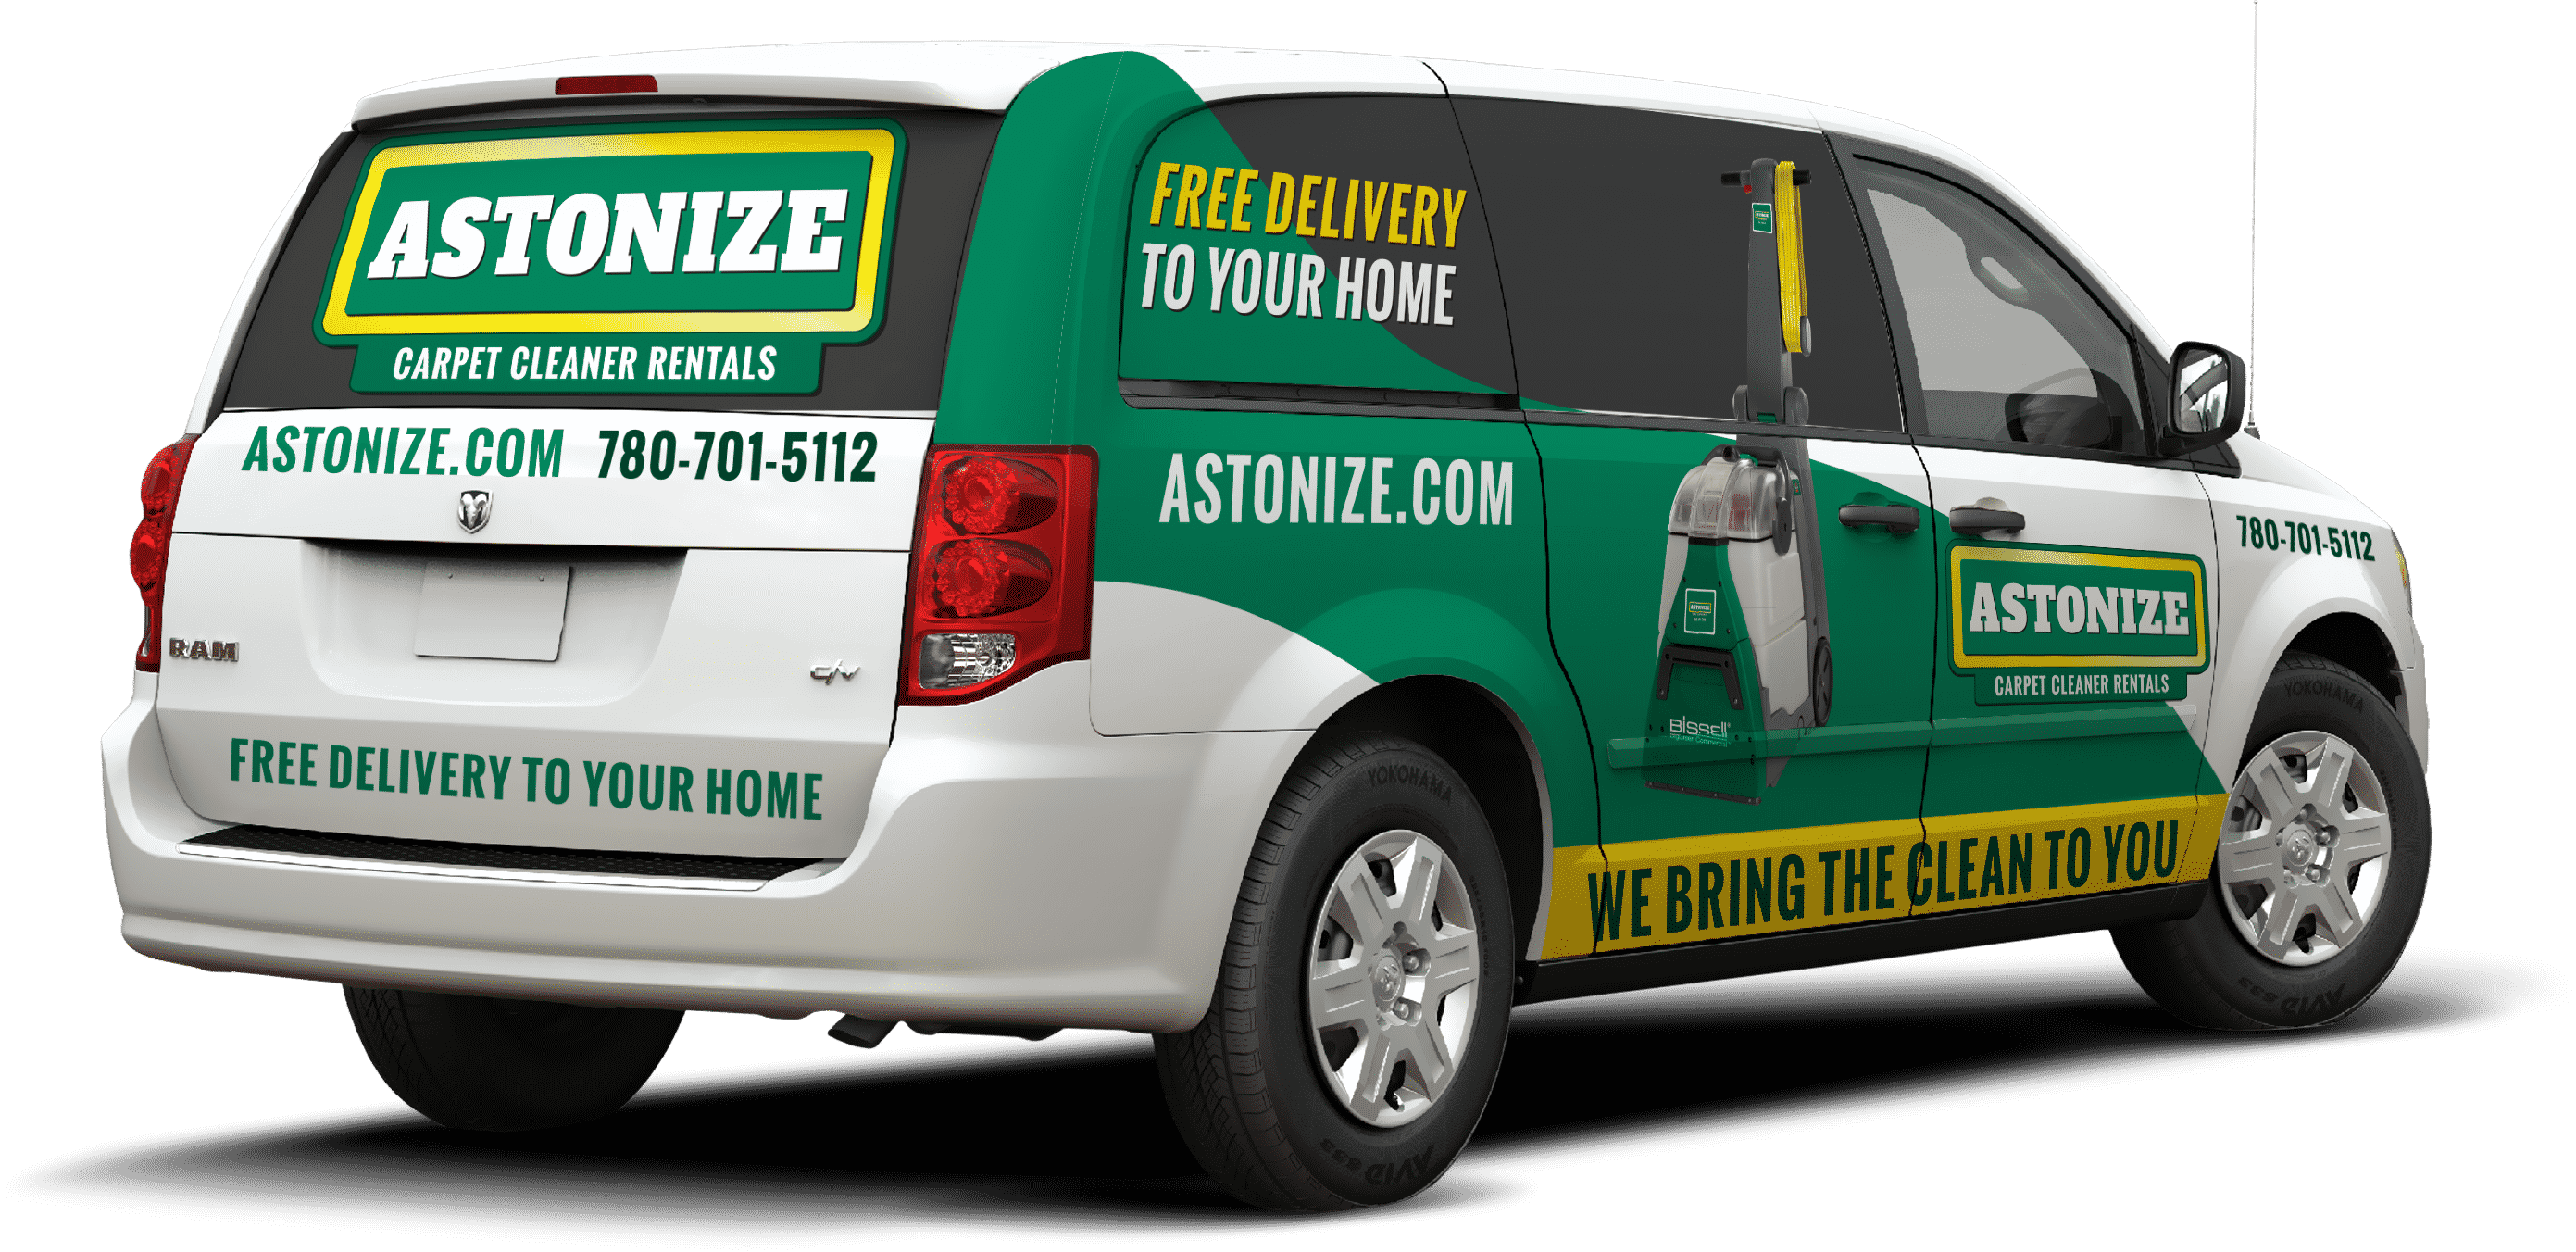 Astonize_VanWrap_Pass_Mockup_Nov2018_V3_trim